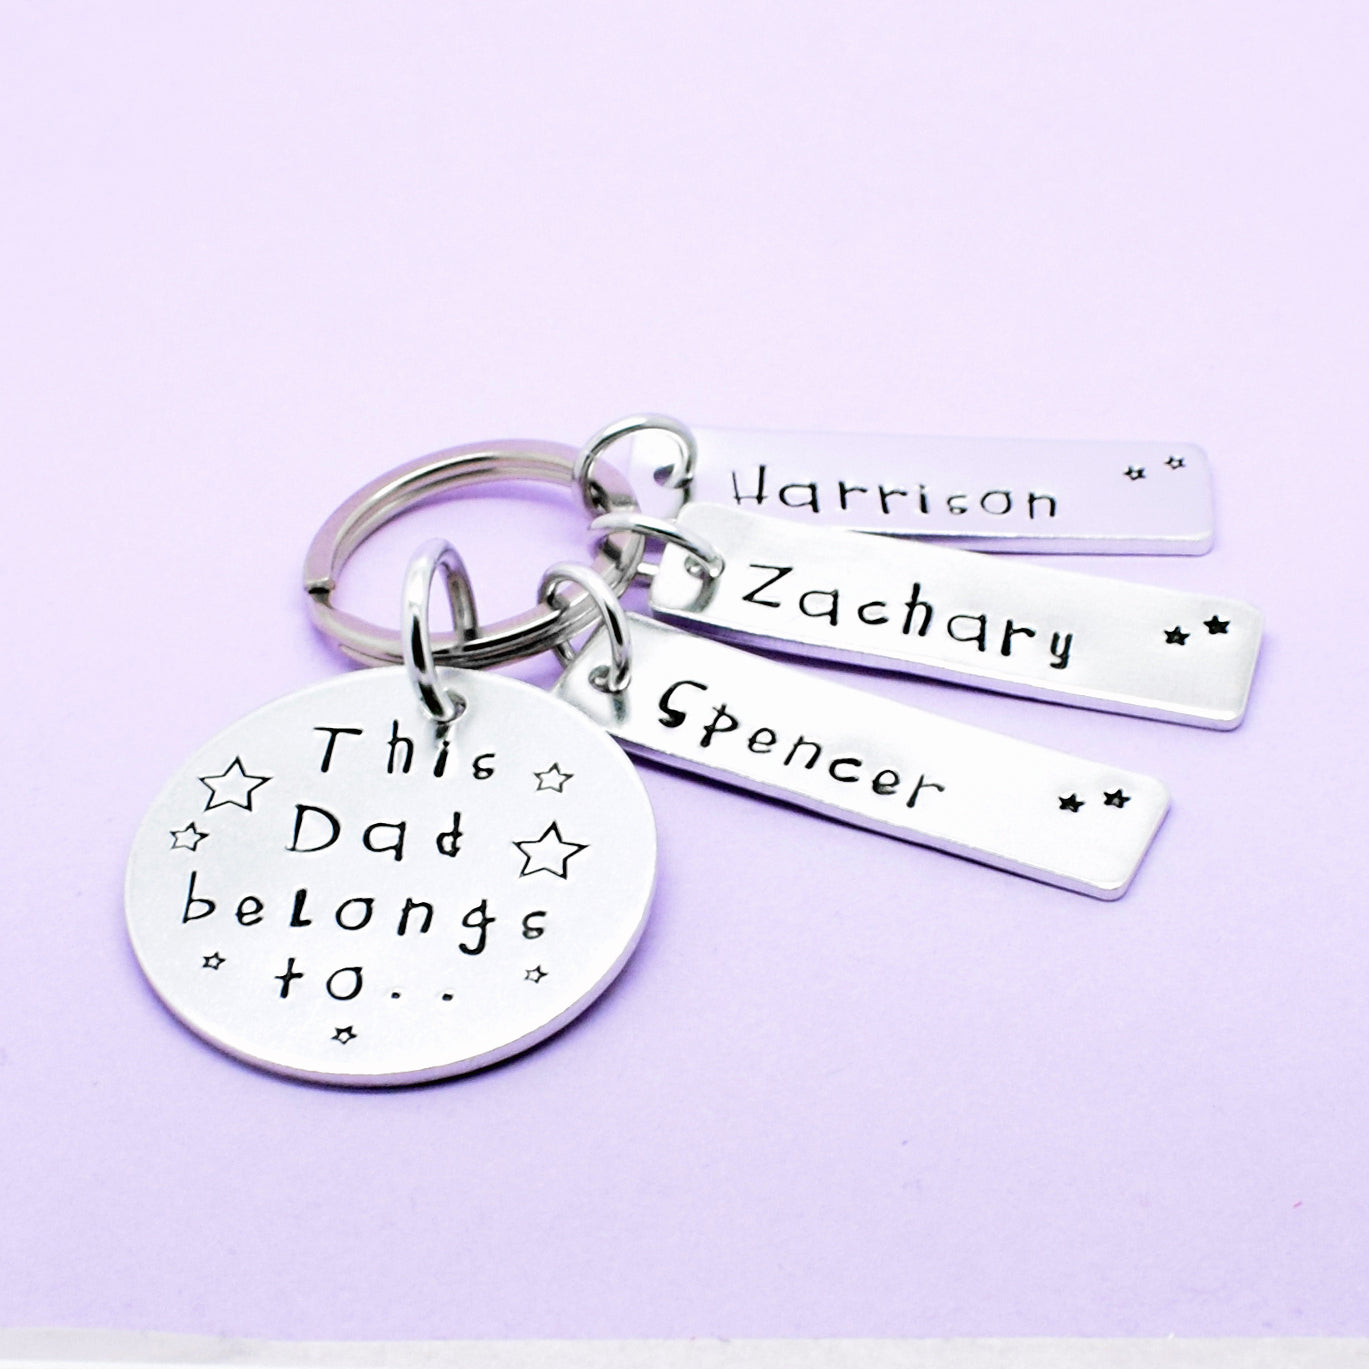 Personalised Dad Daddy Keyring, This Dad Belongs To Hand Stamped Personalised Keyring, Personalised Fathers Day, Gift For Dad, Keychain